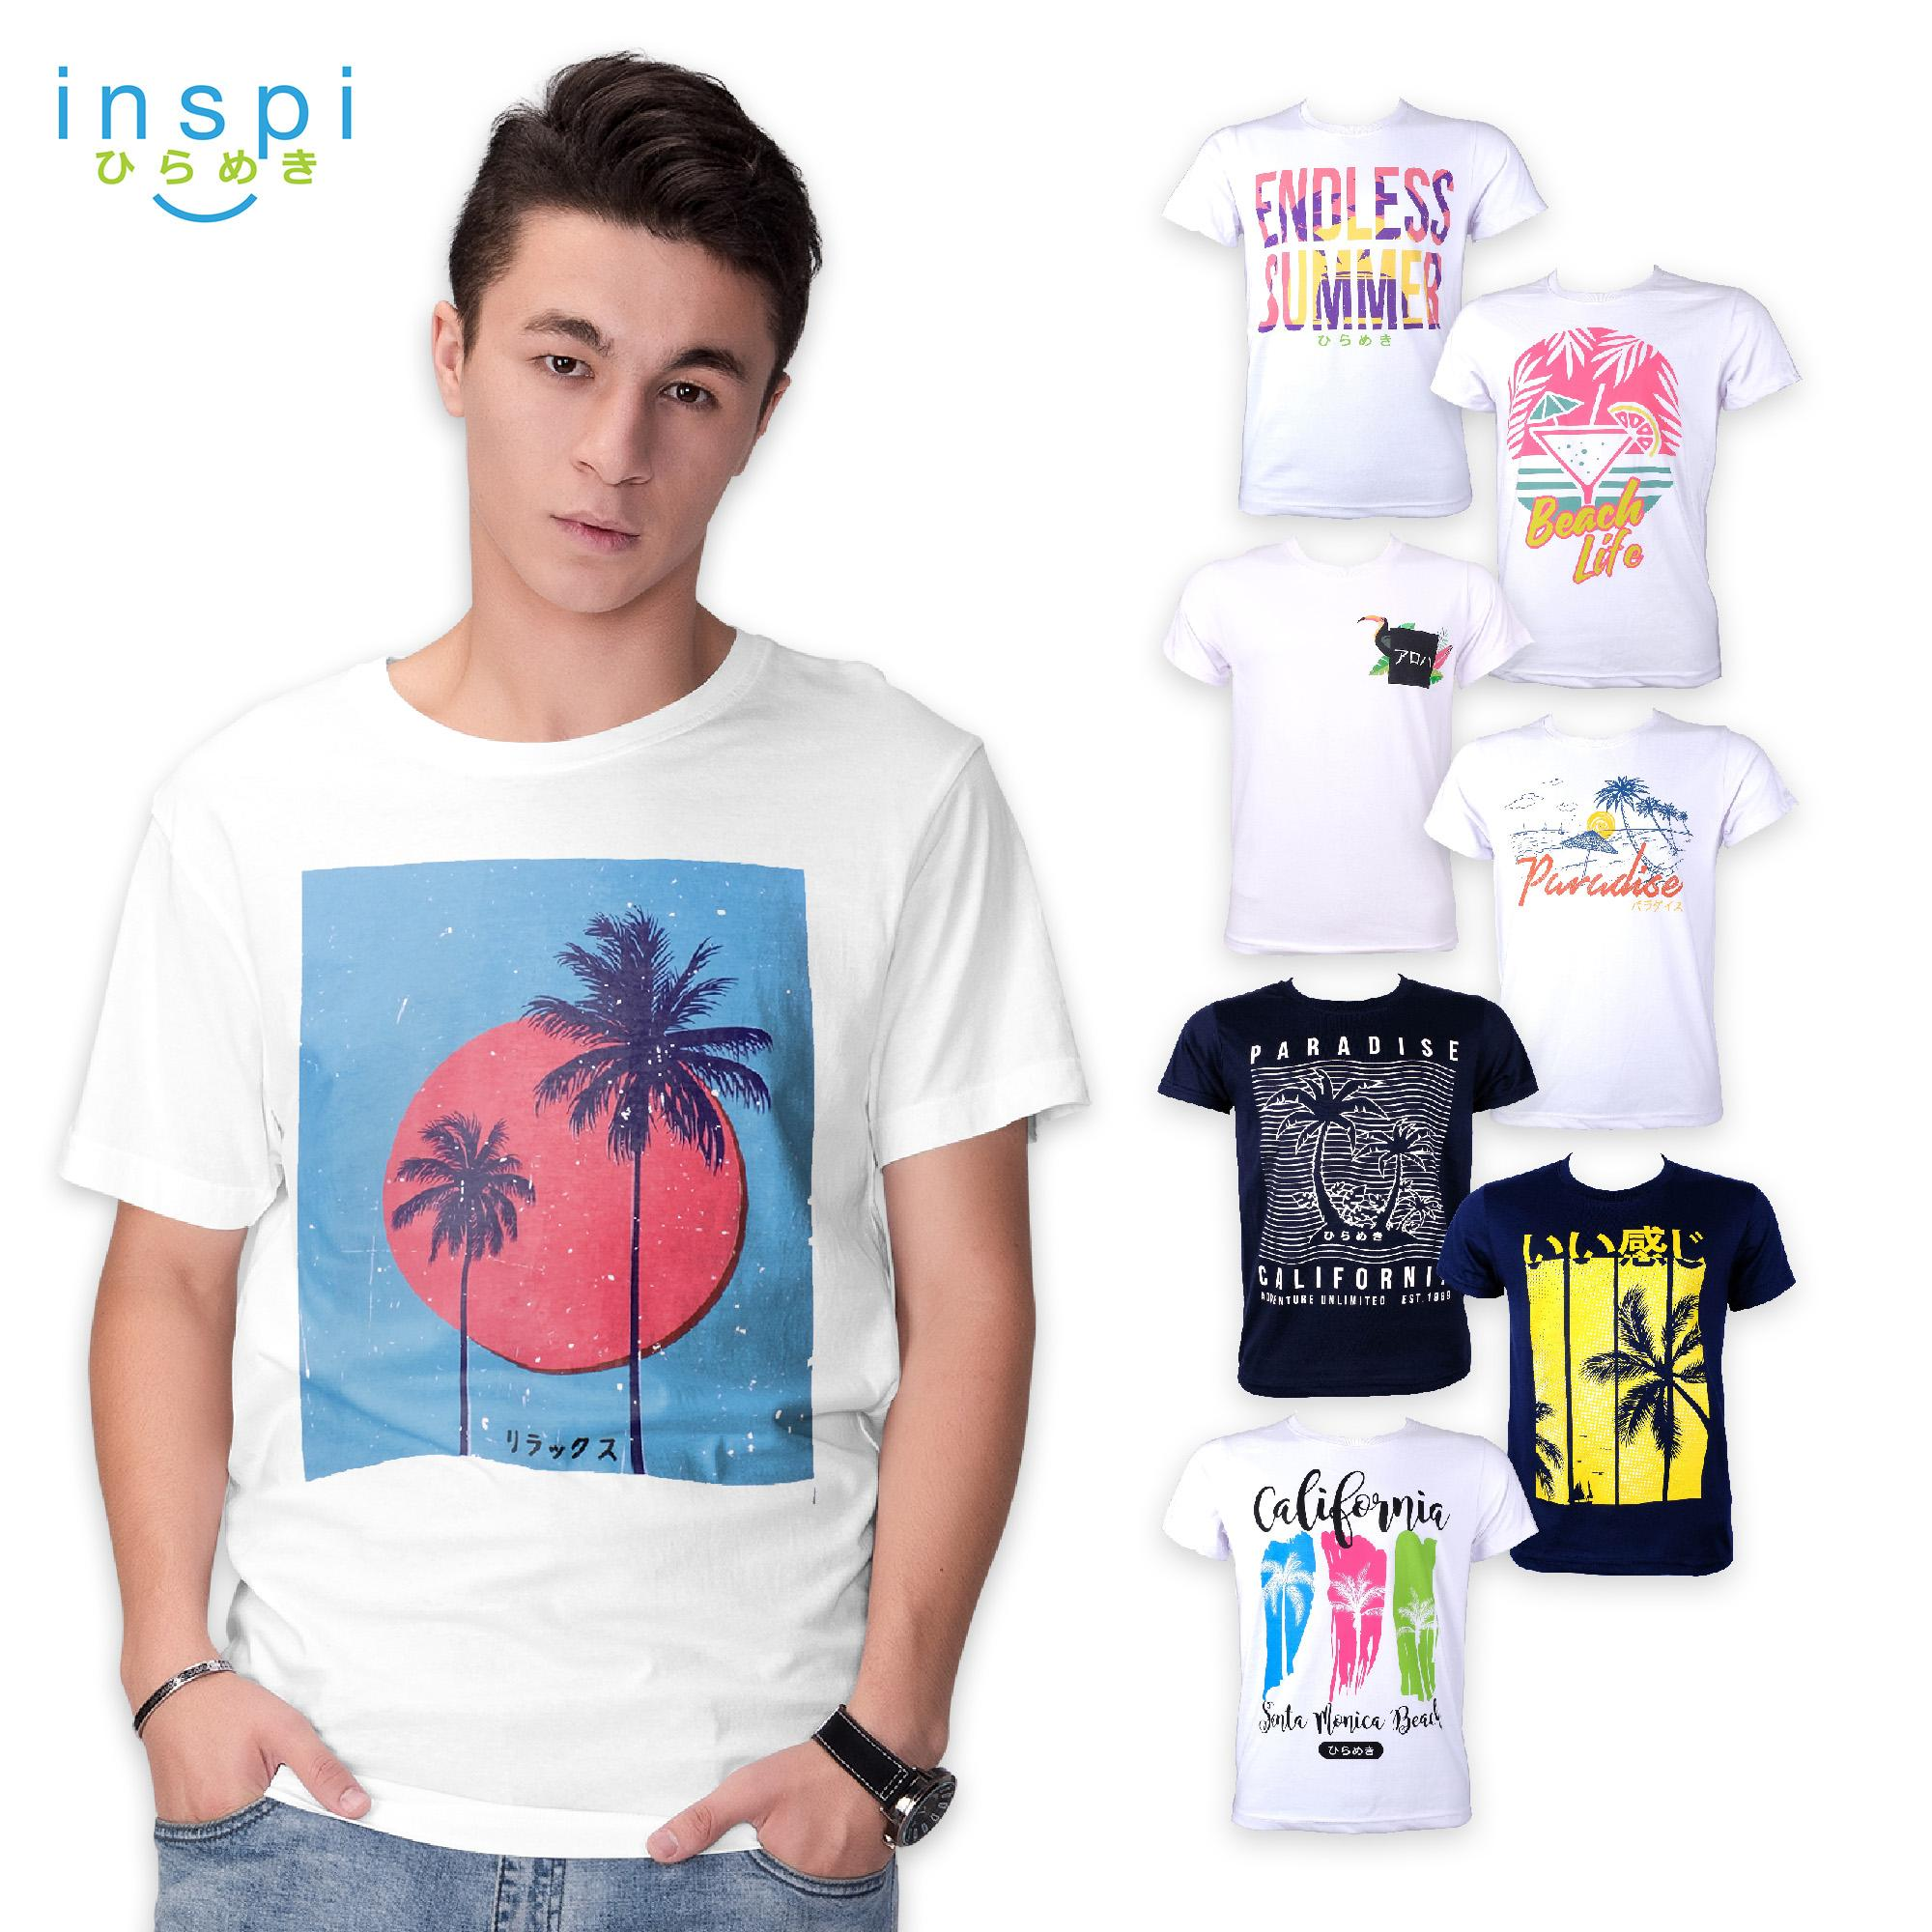 b38a5ae9402b INSPI Tees Summer Collection tshirt printed graphic tee Mens t shirt shirts  for men tshirts sale